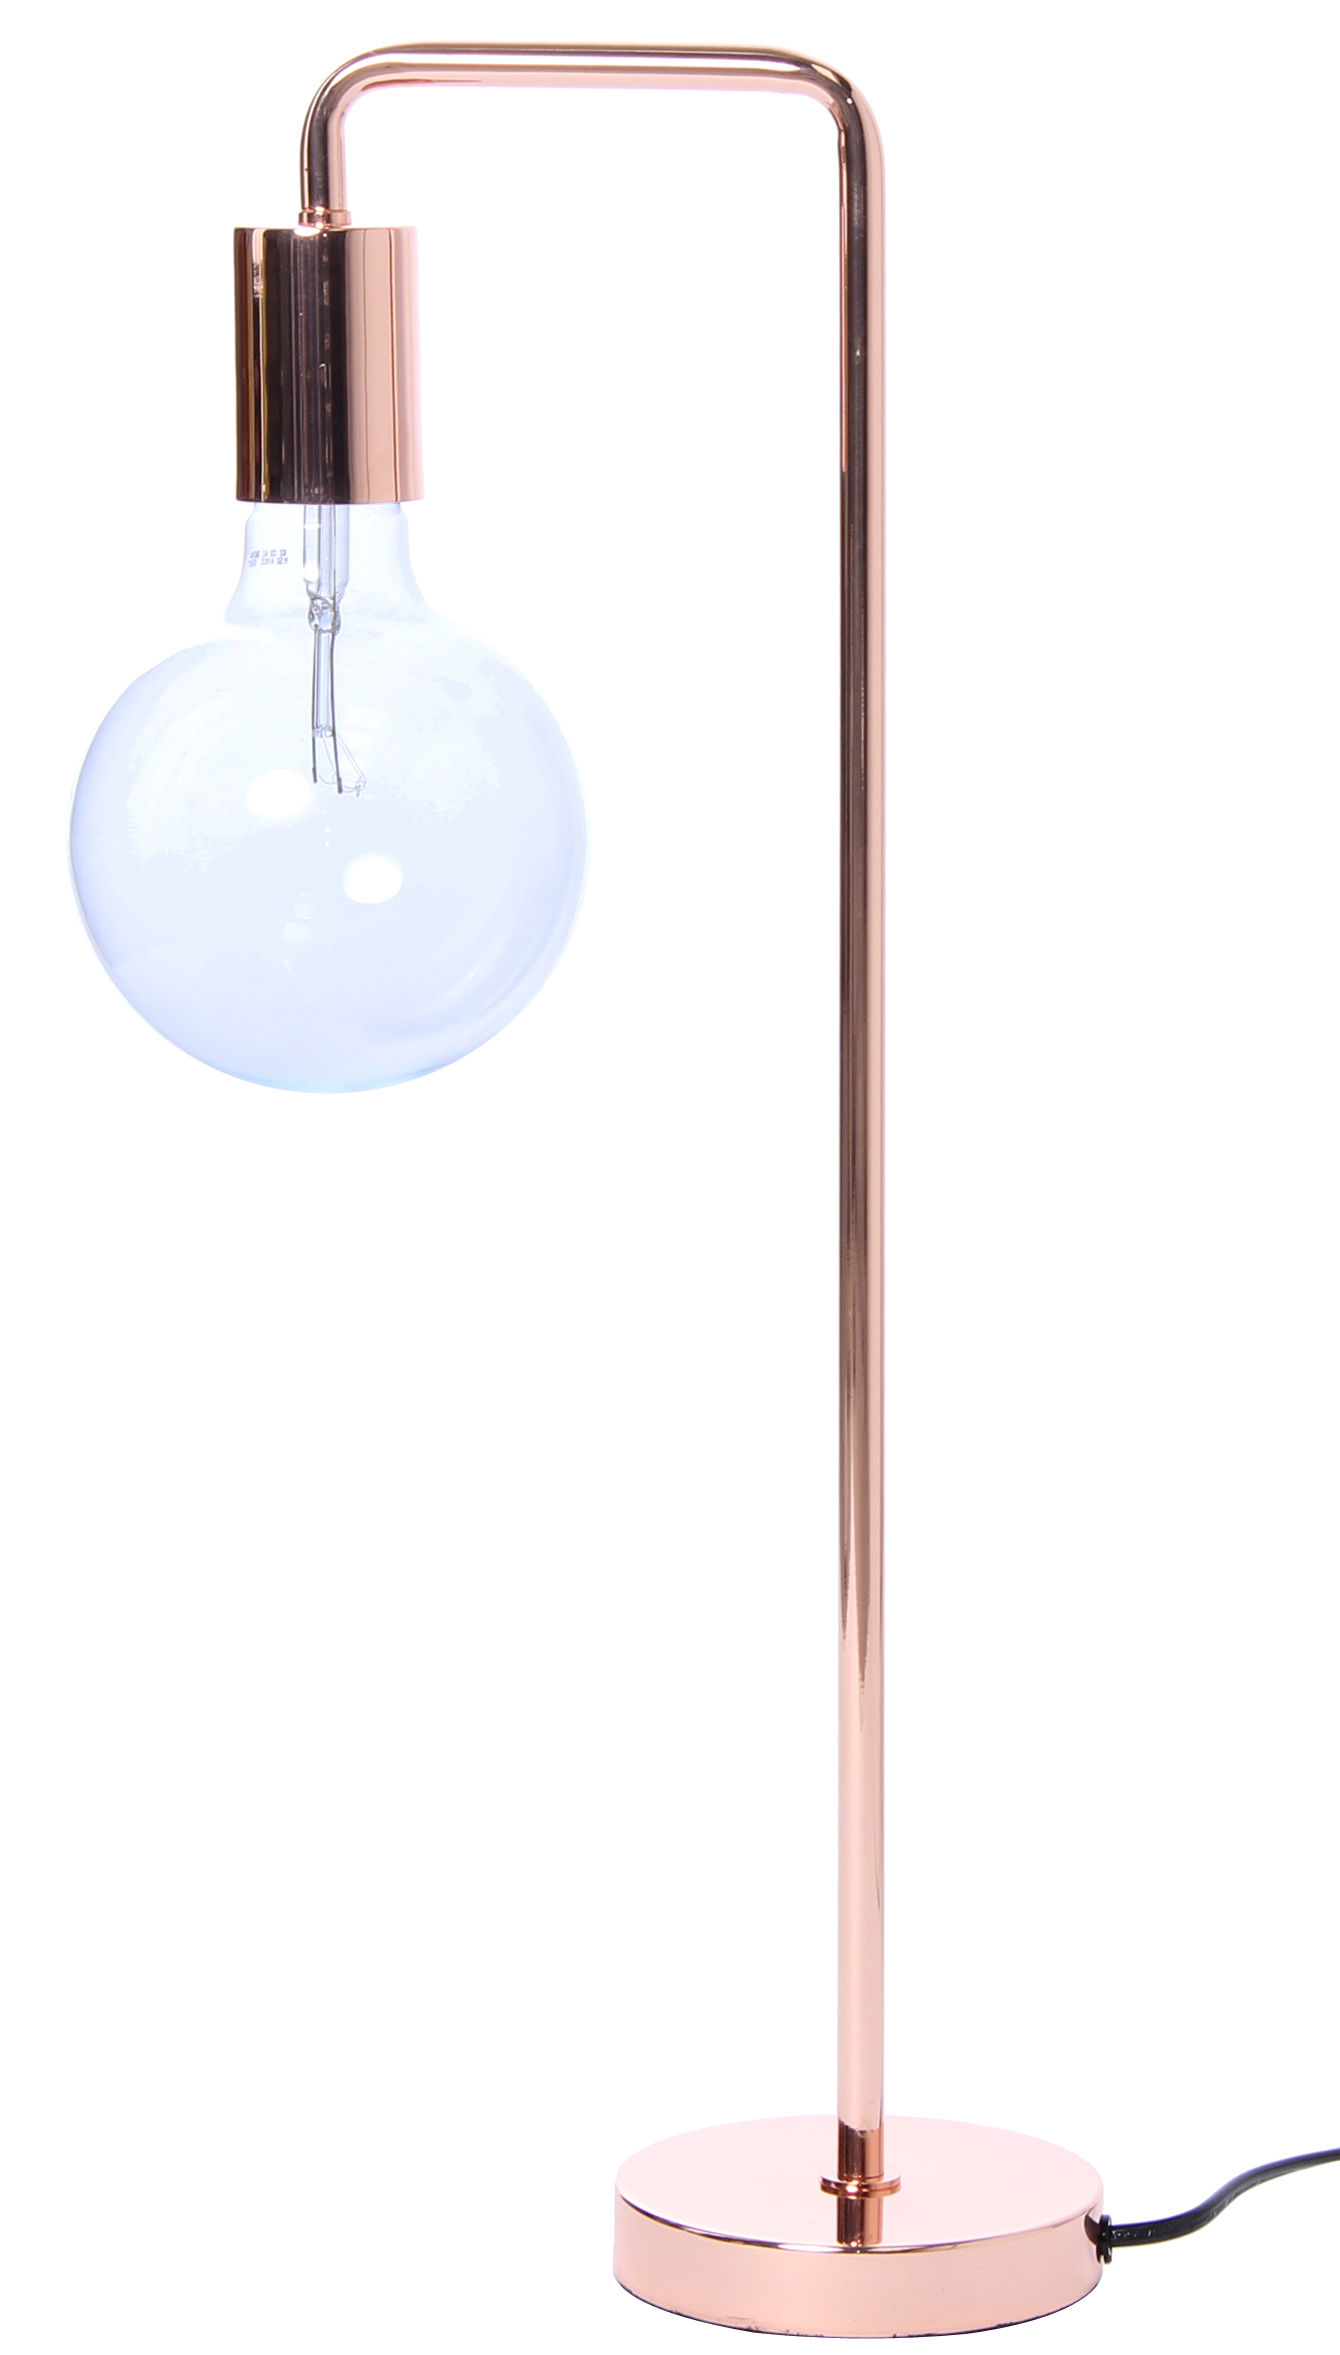 Lighting - Table Lamps - Cool Table lamp - / H 55 cm by Frandsen - Copper - Copper finish metal